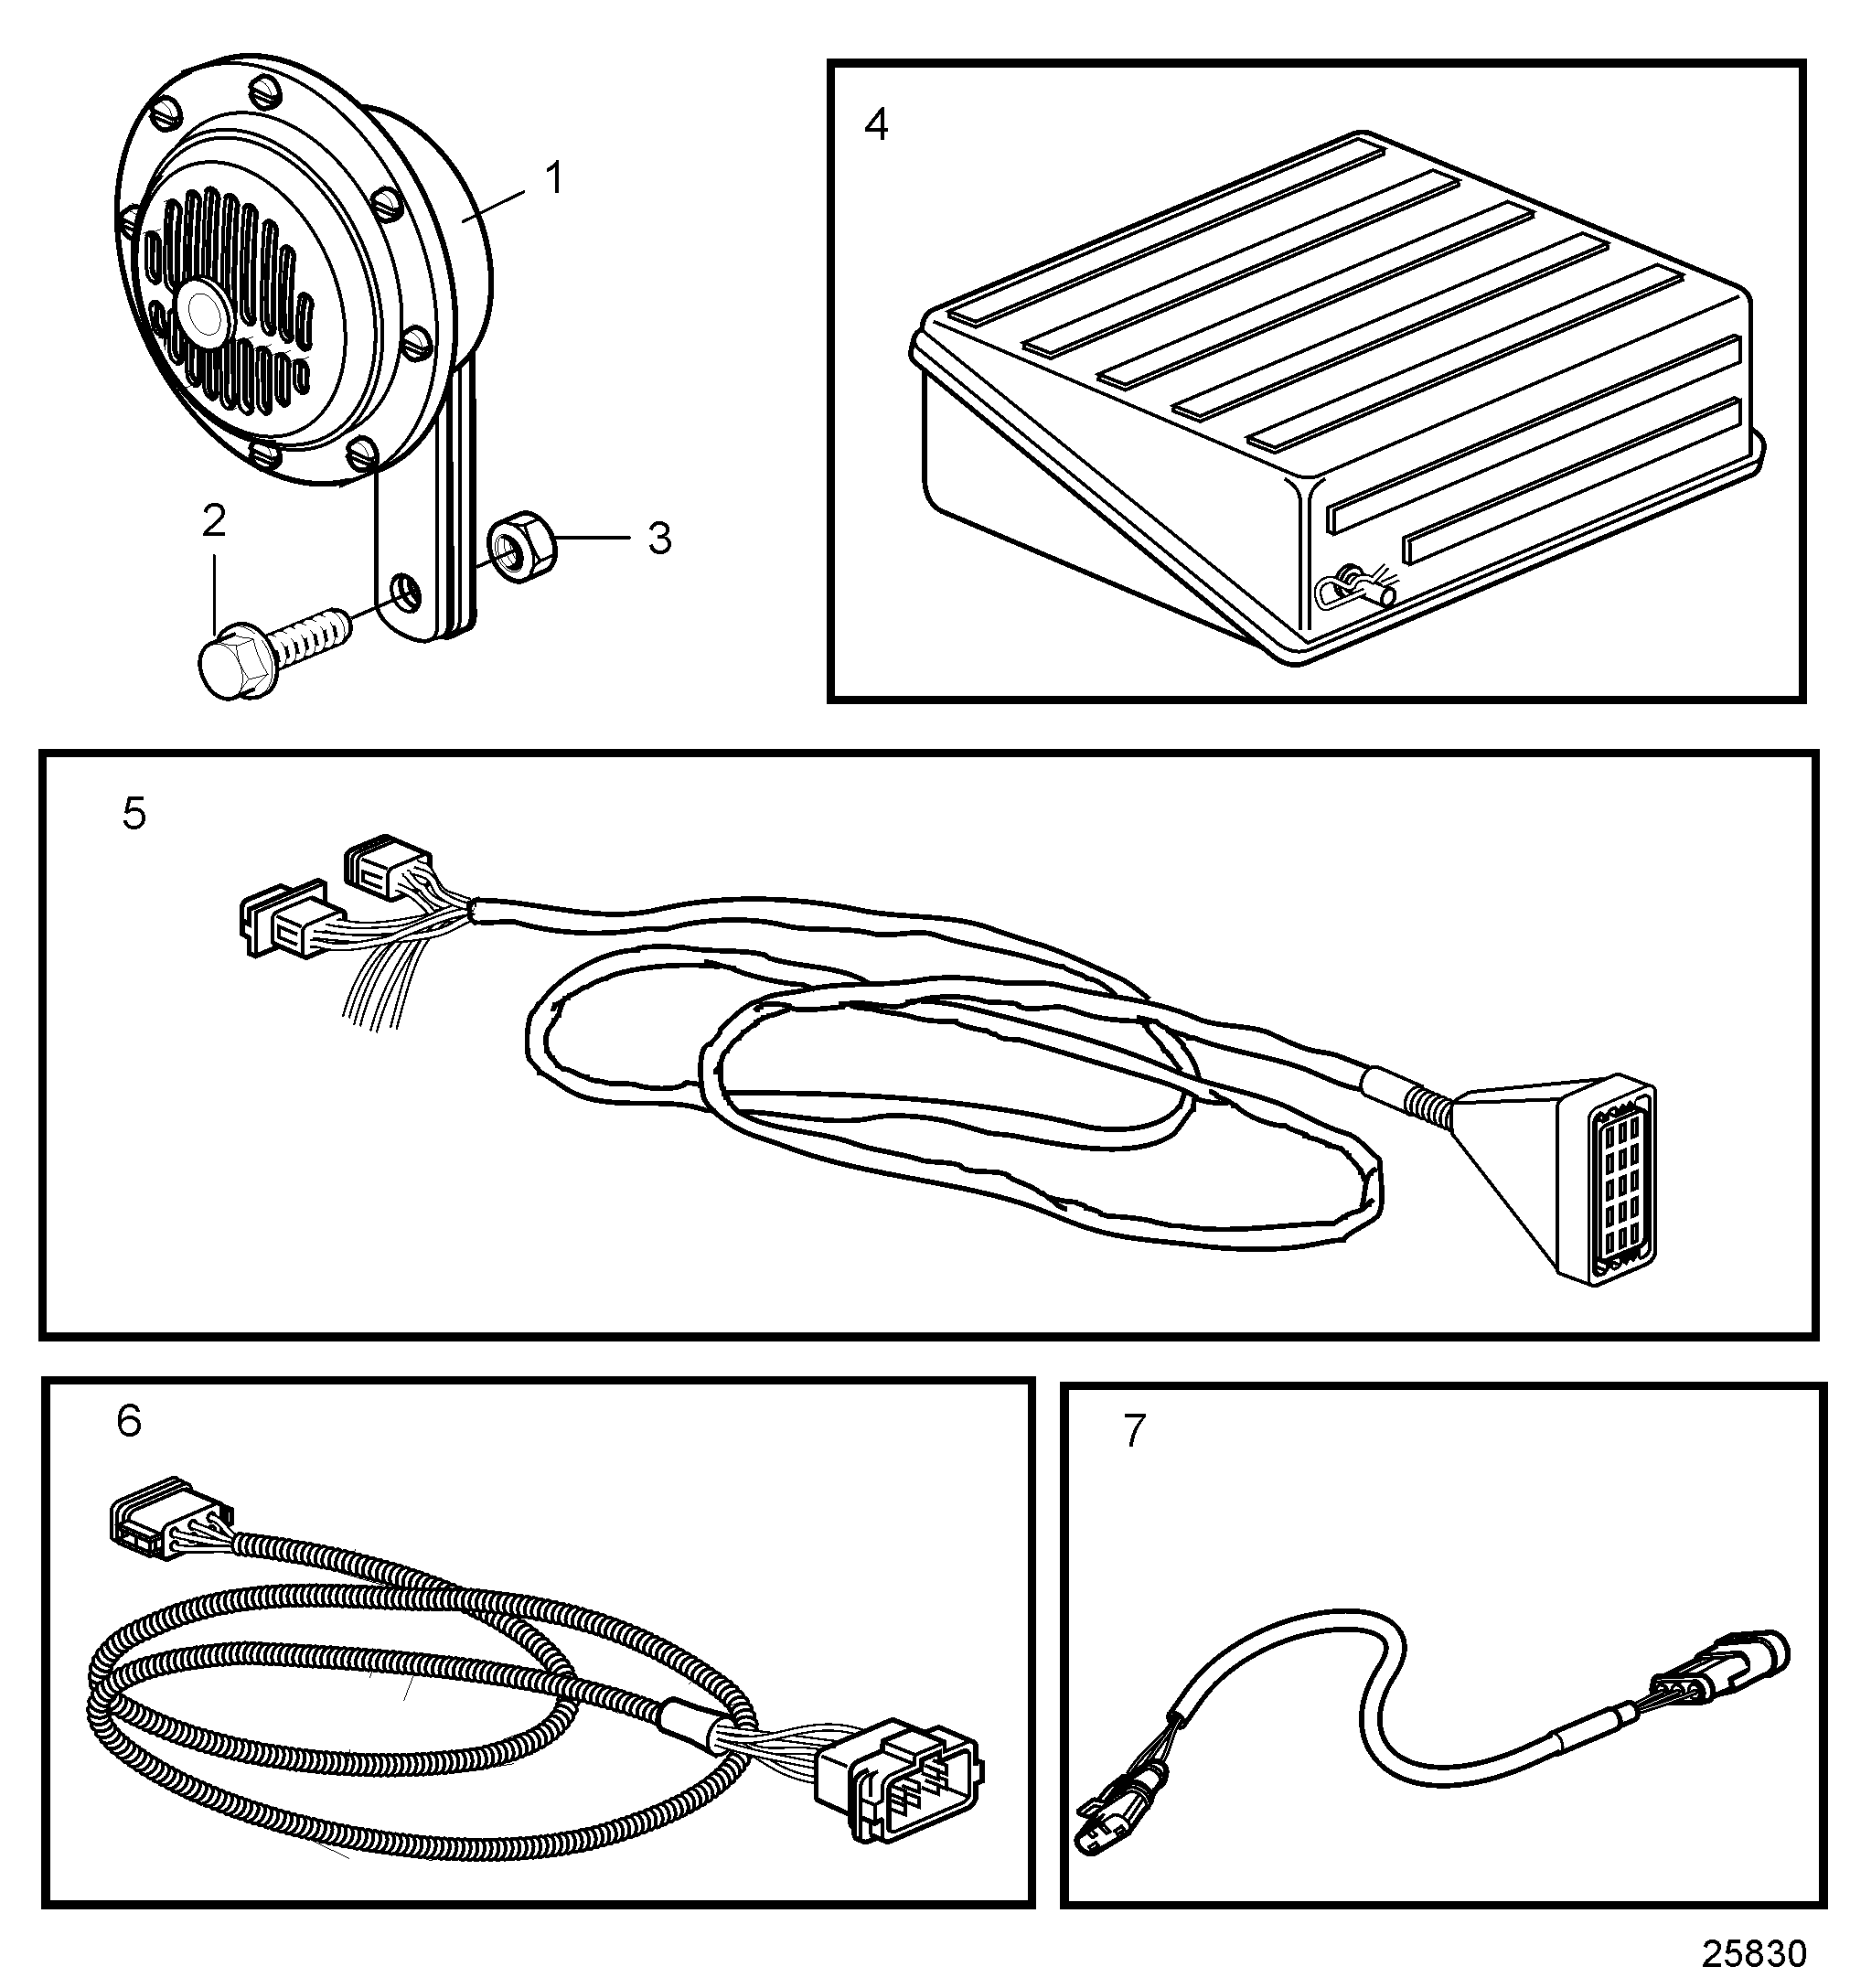 Electrical Materials, Extension Cables